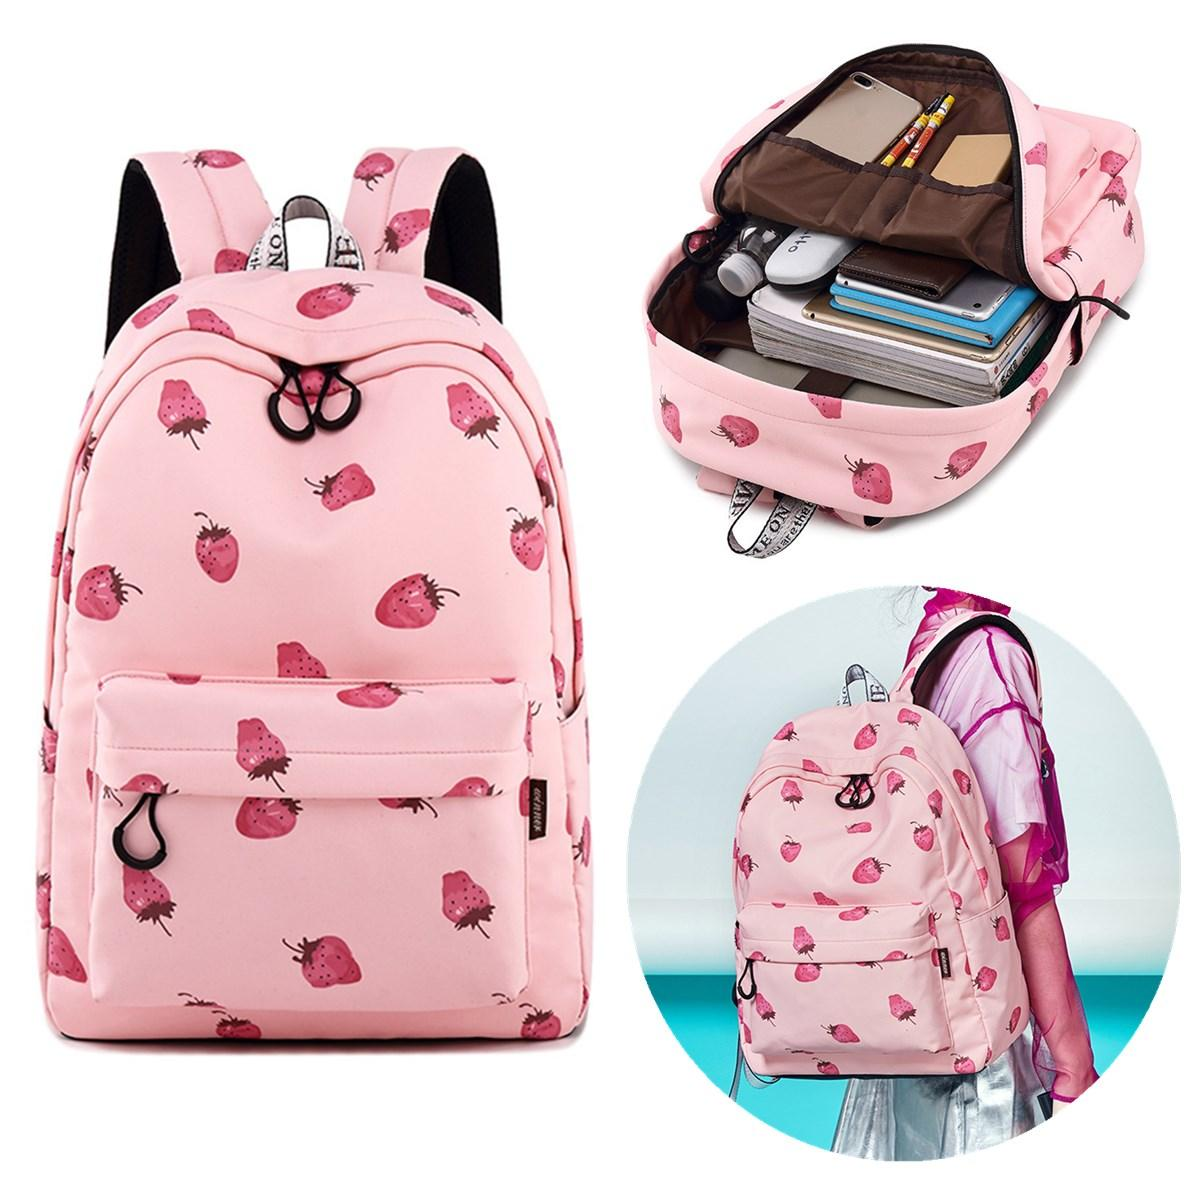 15.6 Inch Teen Girls Student Laptop Bag Pink Strawberry Handbag Travel  Backpack Schoolbag COD